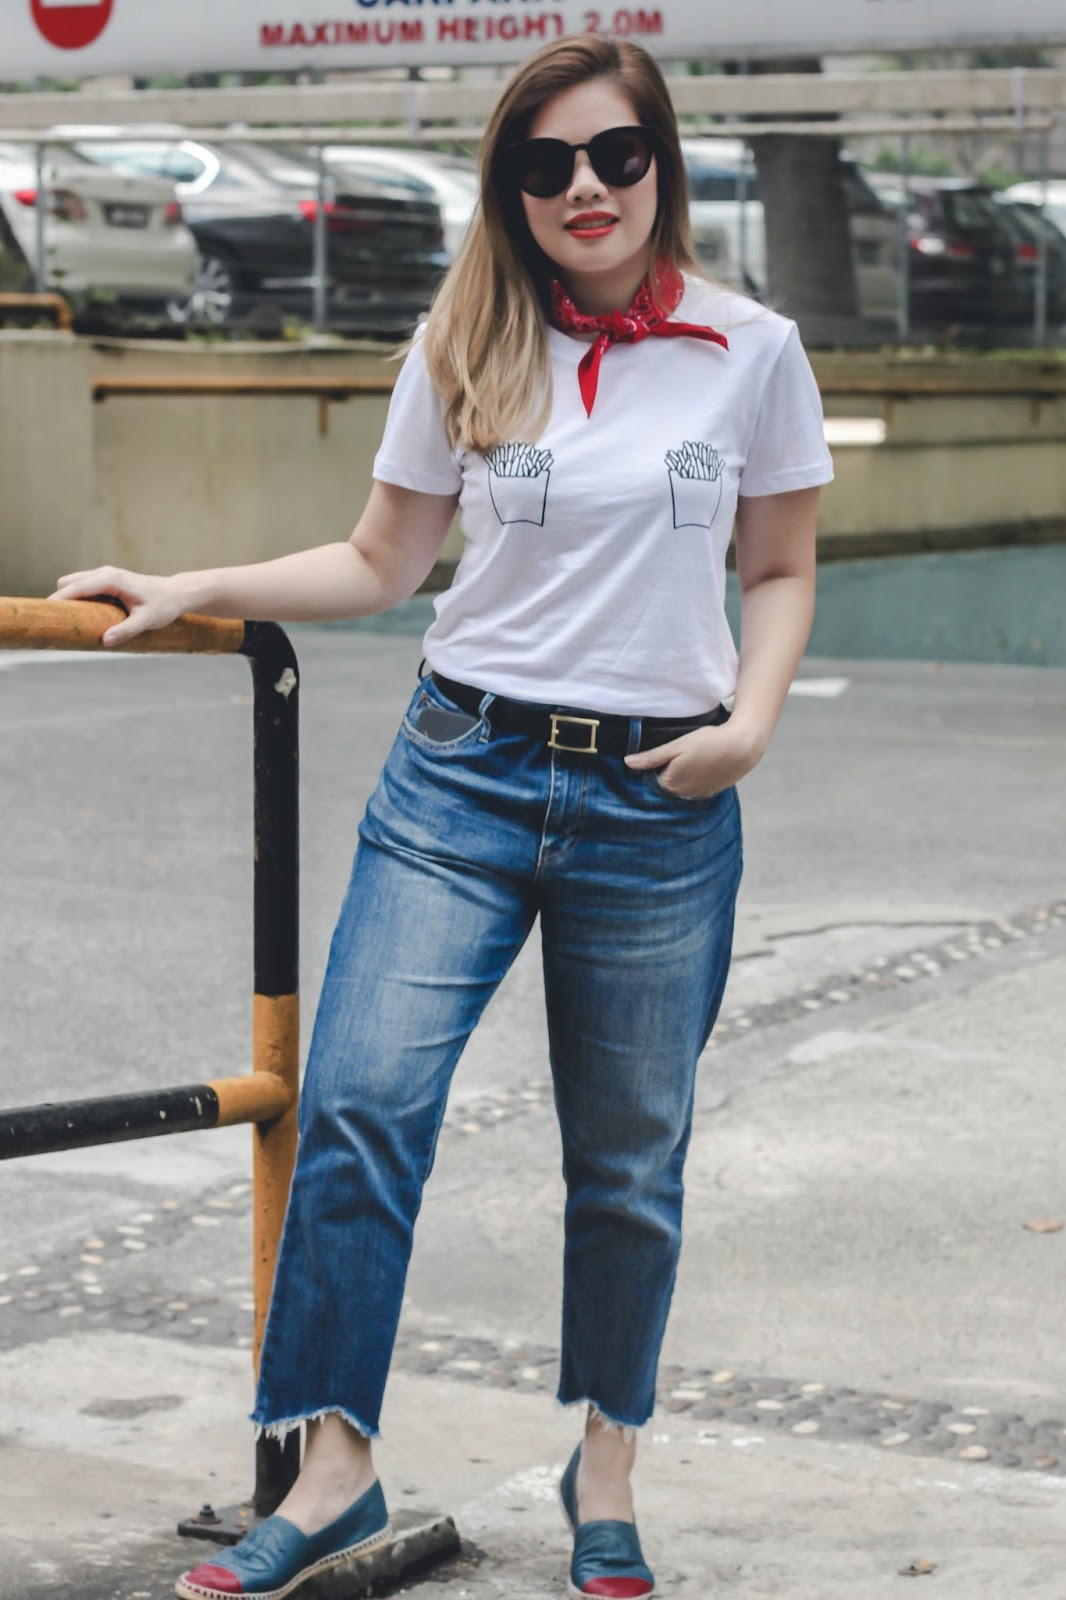 singapore blogger street style look book fashion bandana photography outfit denim tees chanel